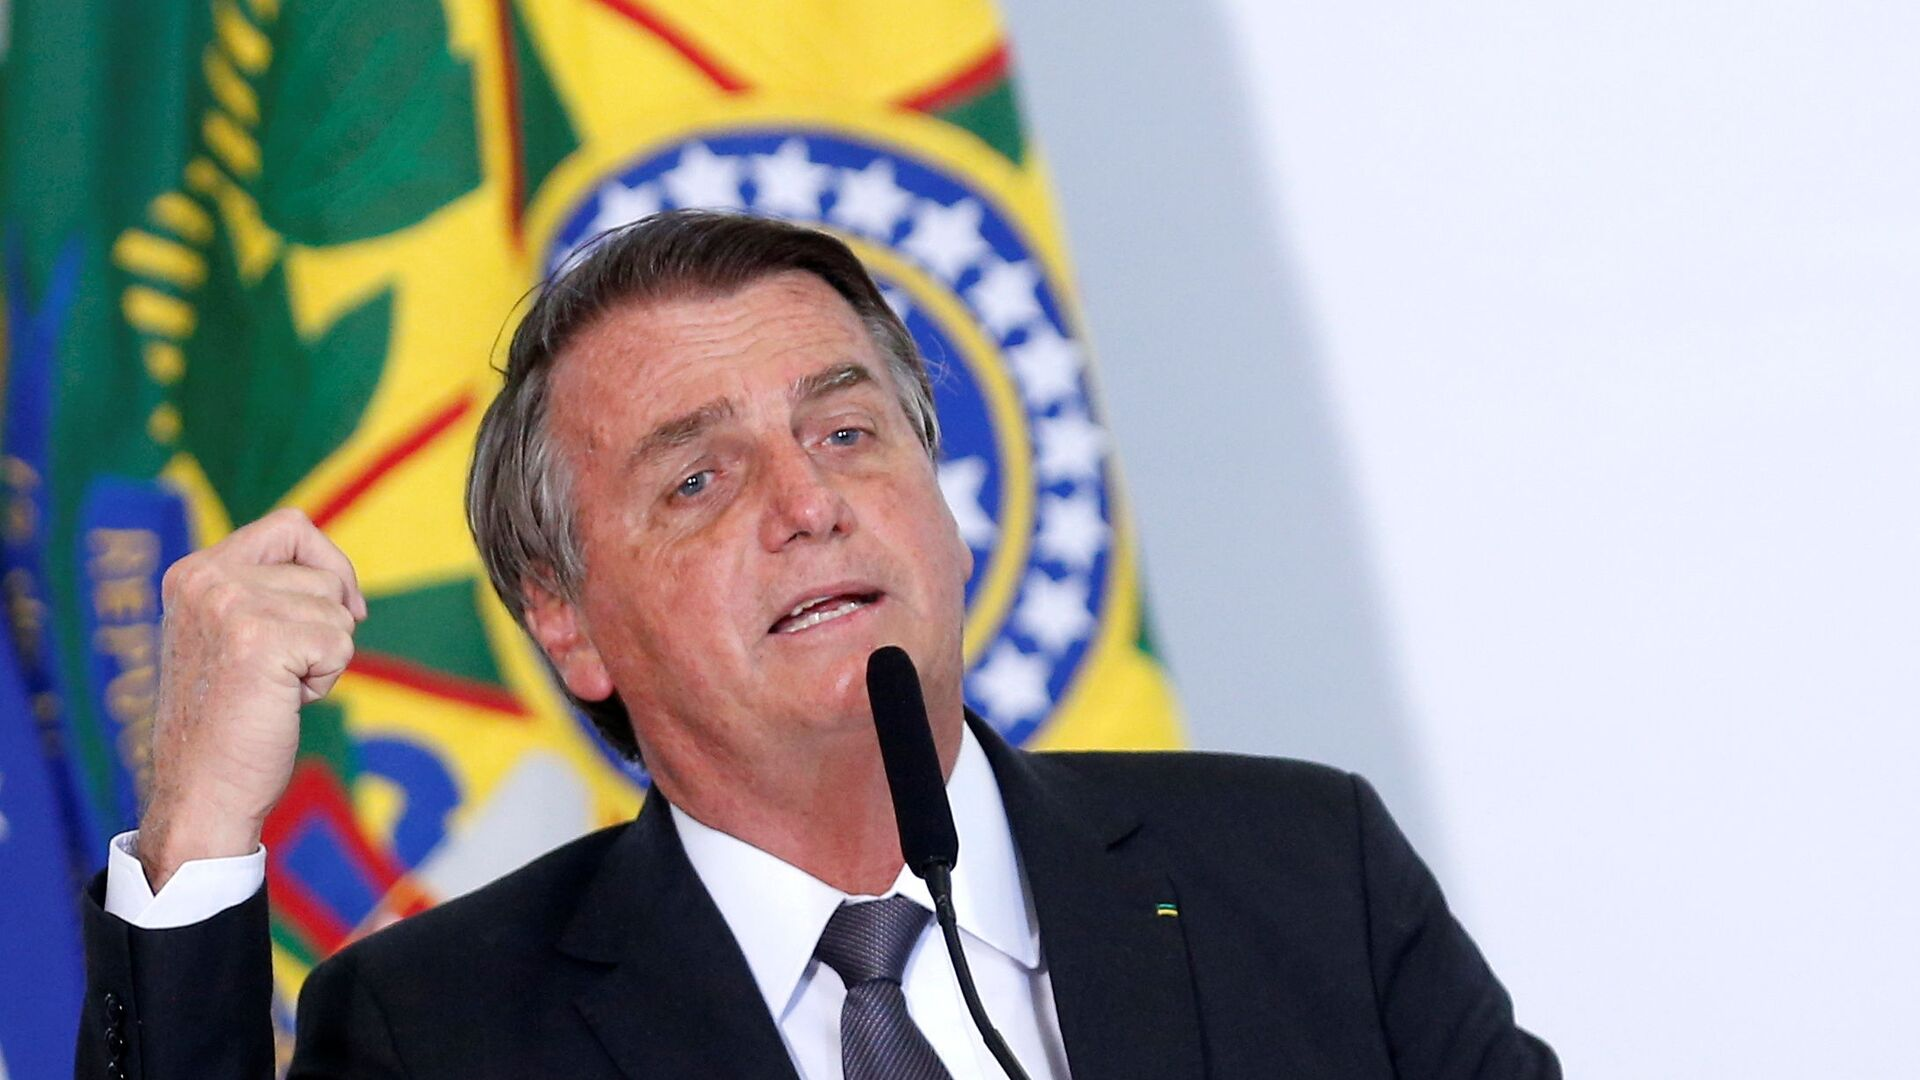 Brazil's President Jair Bolsonaro speaks during a ceremony to sign a law for the privatization of state-controlled electricity utility Eletrobras, at the Planalto Palace in Brasilia, Brazil, July 13, 2021. REUTERS/Adriano Machado - Sputnik International, 1920, 03.08.2021